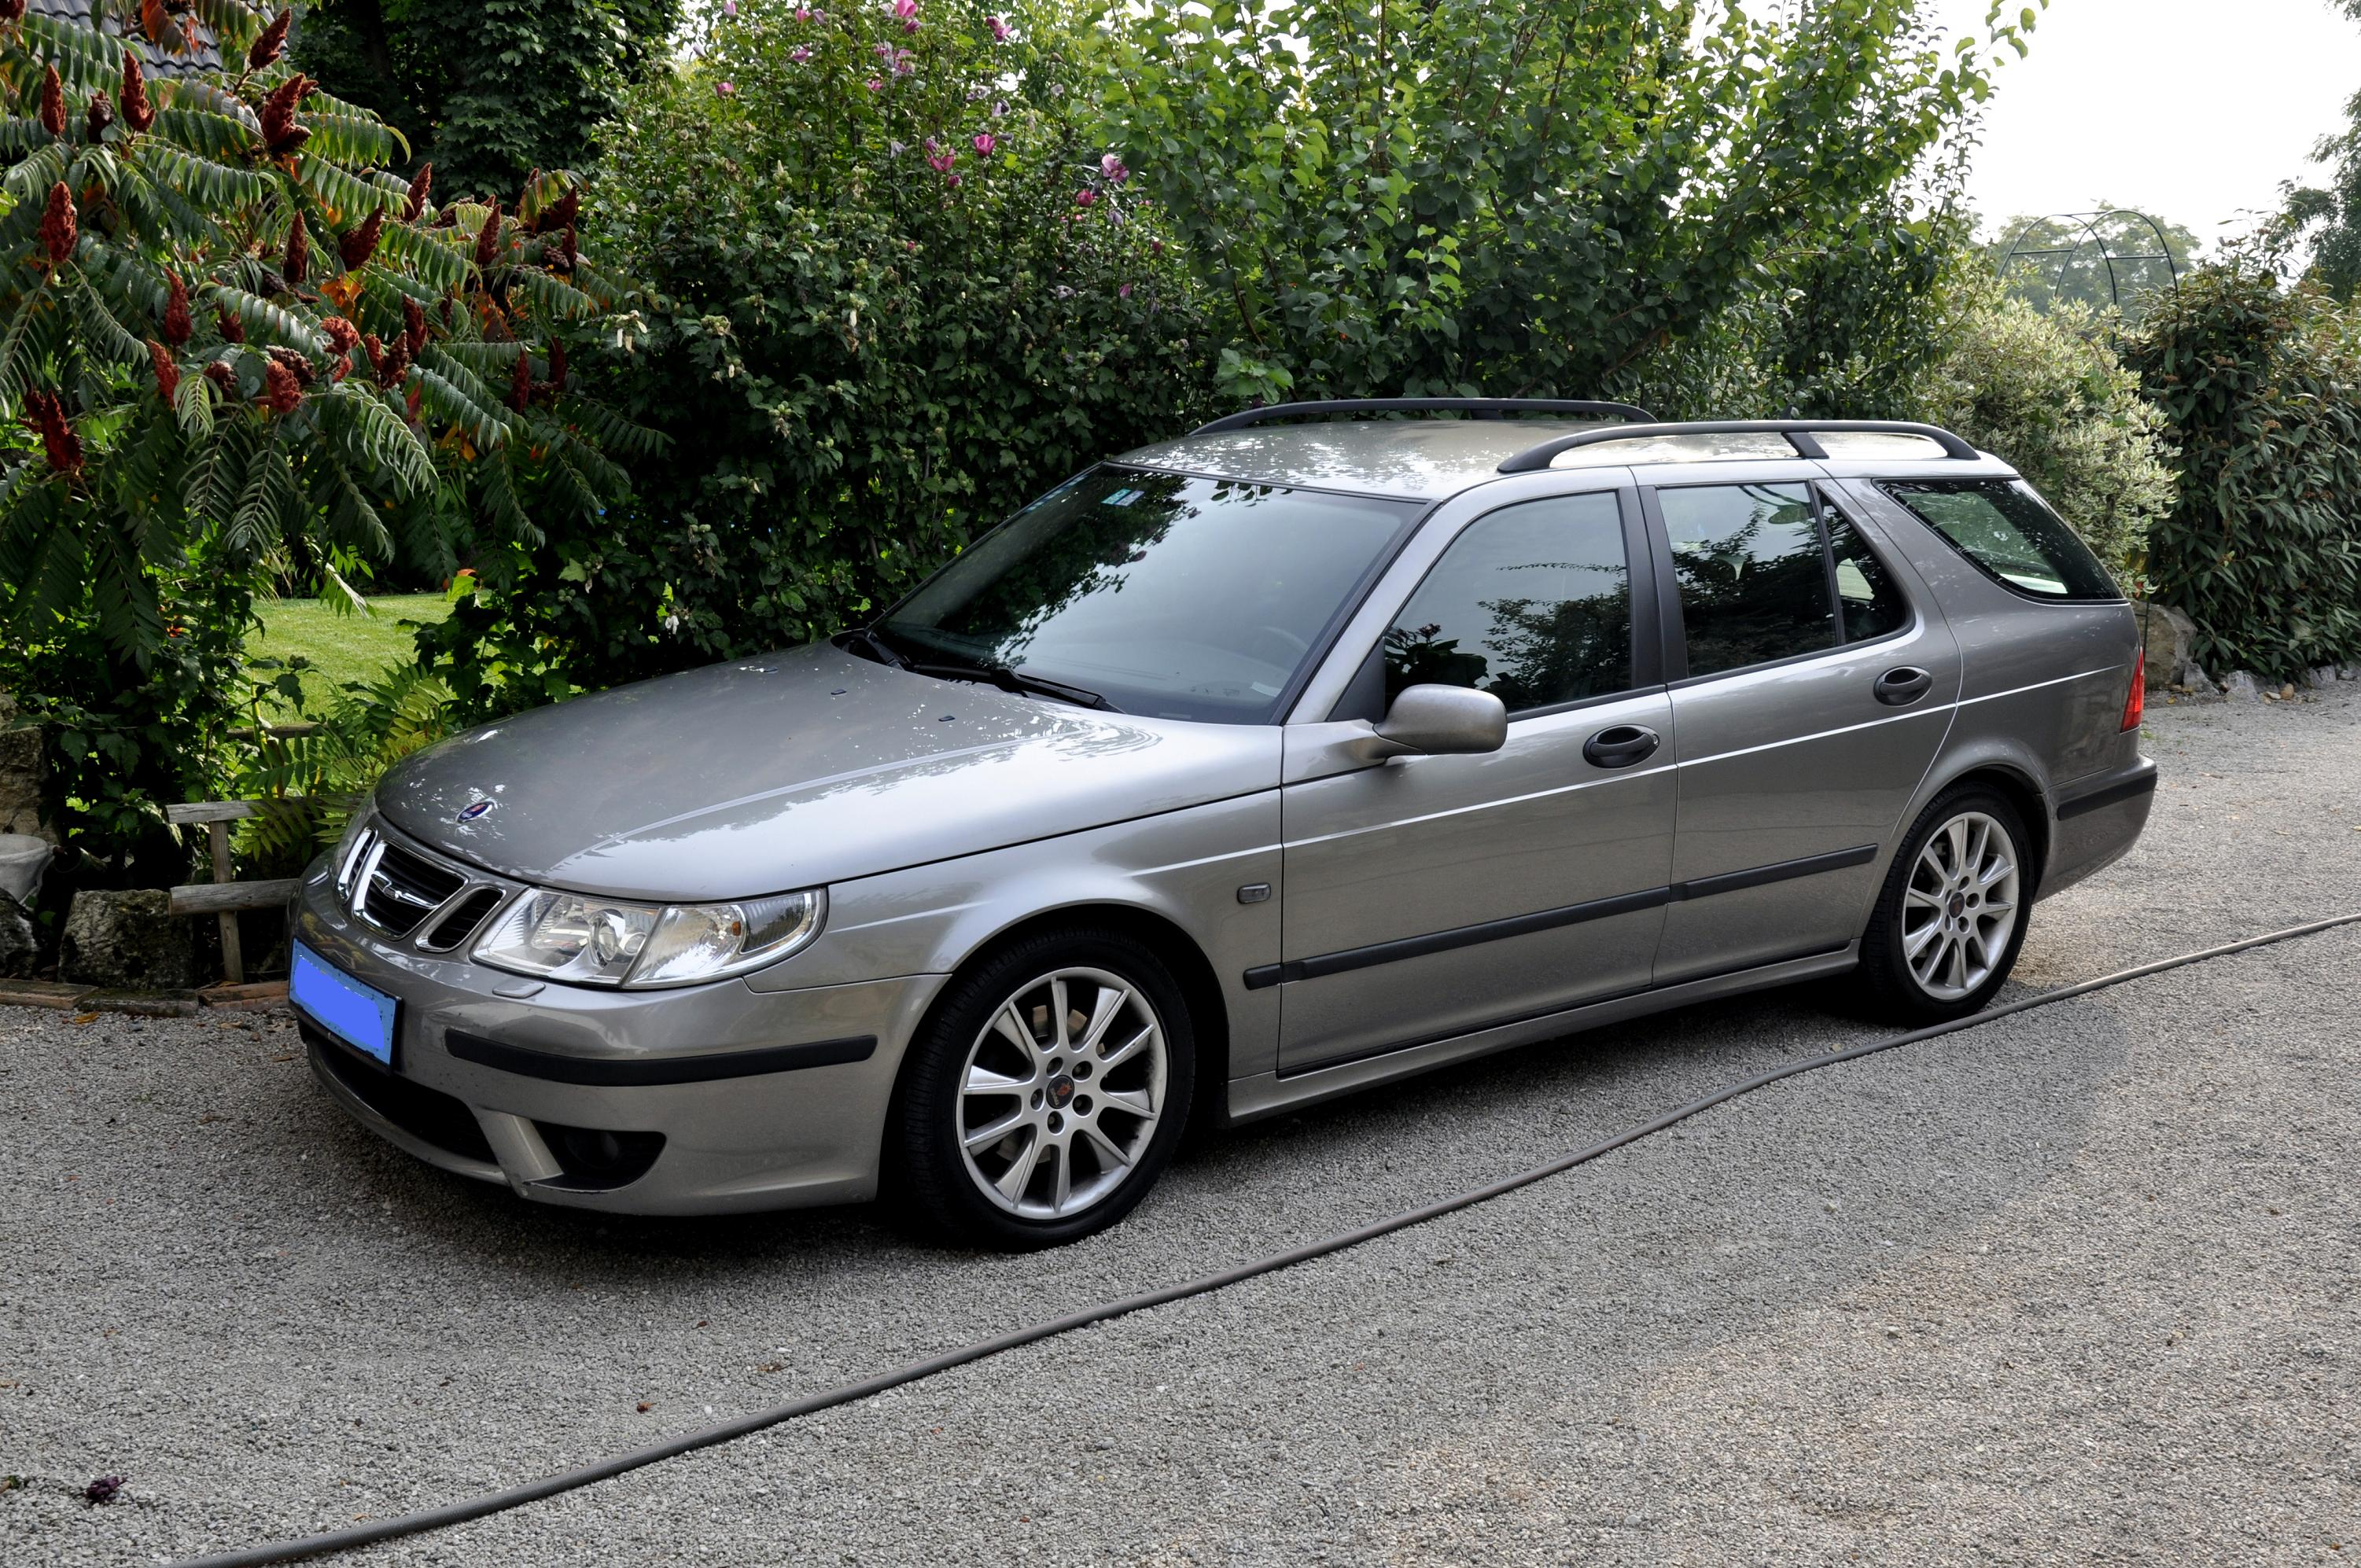 Saab wagon photo - 1